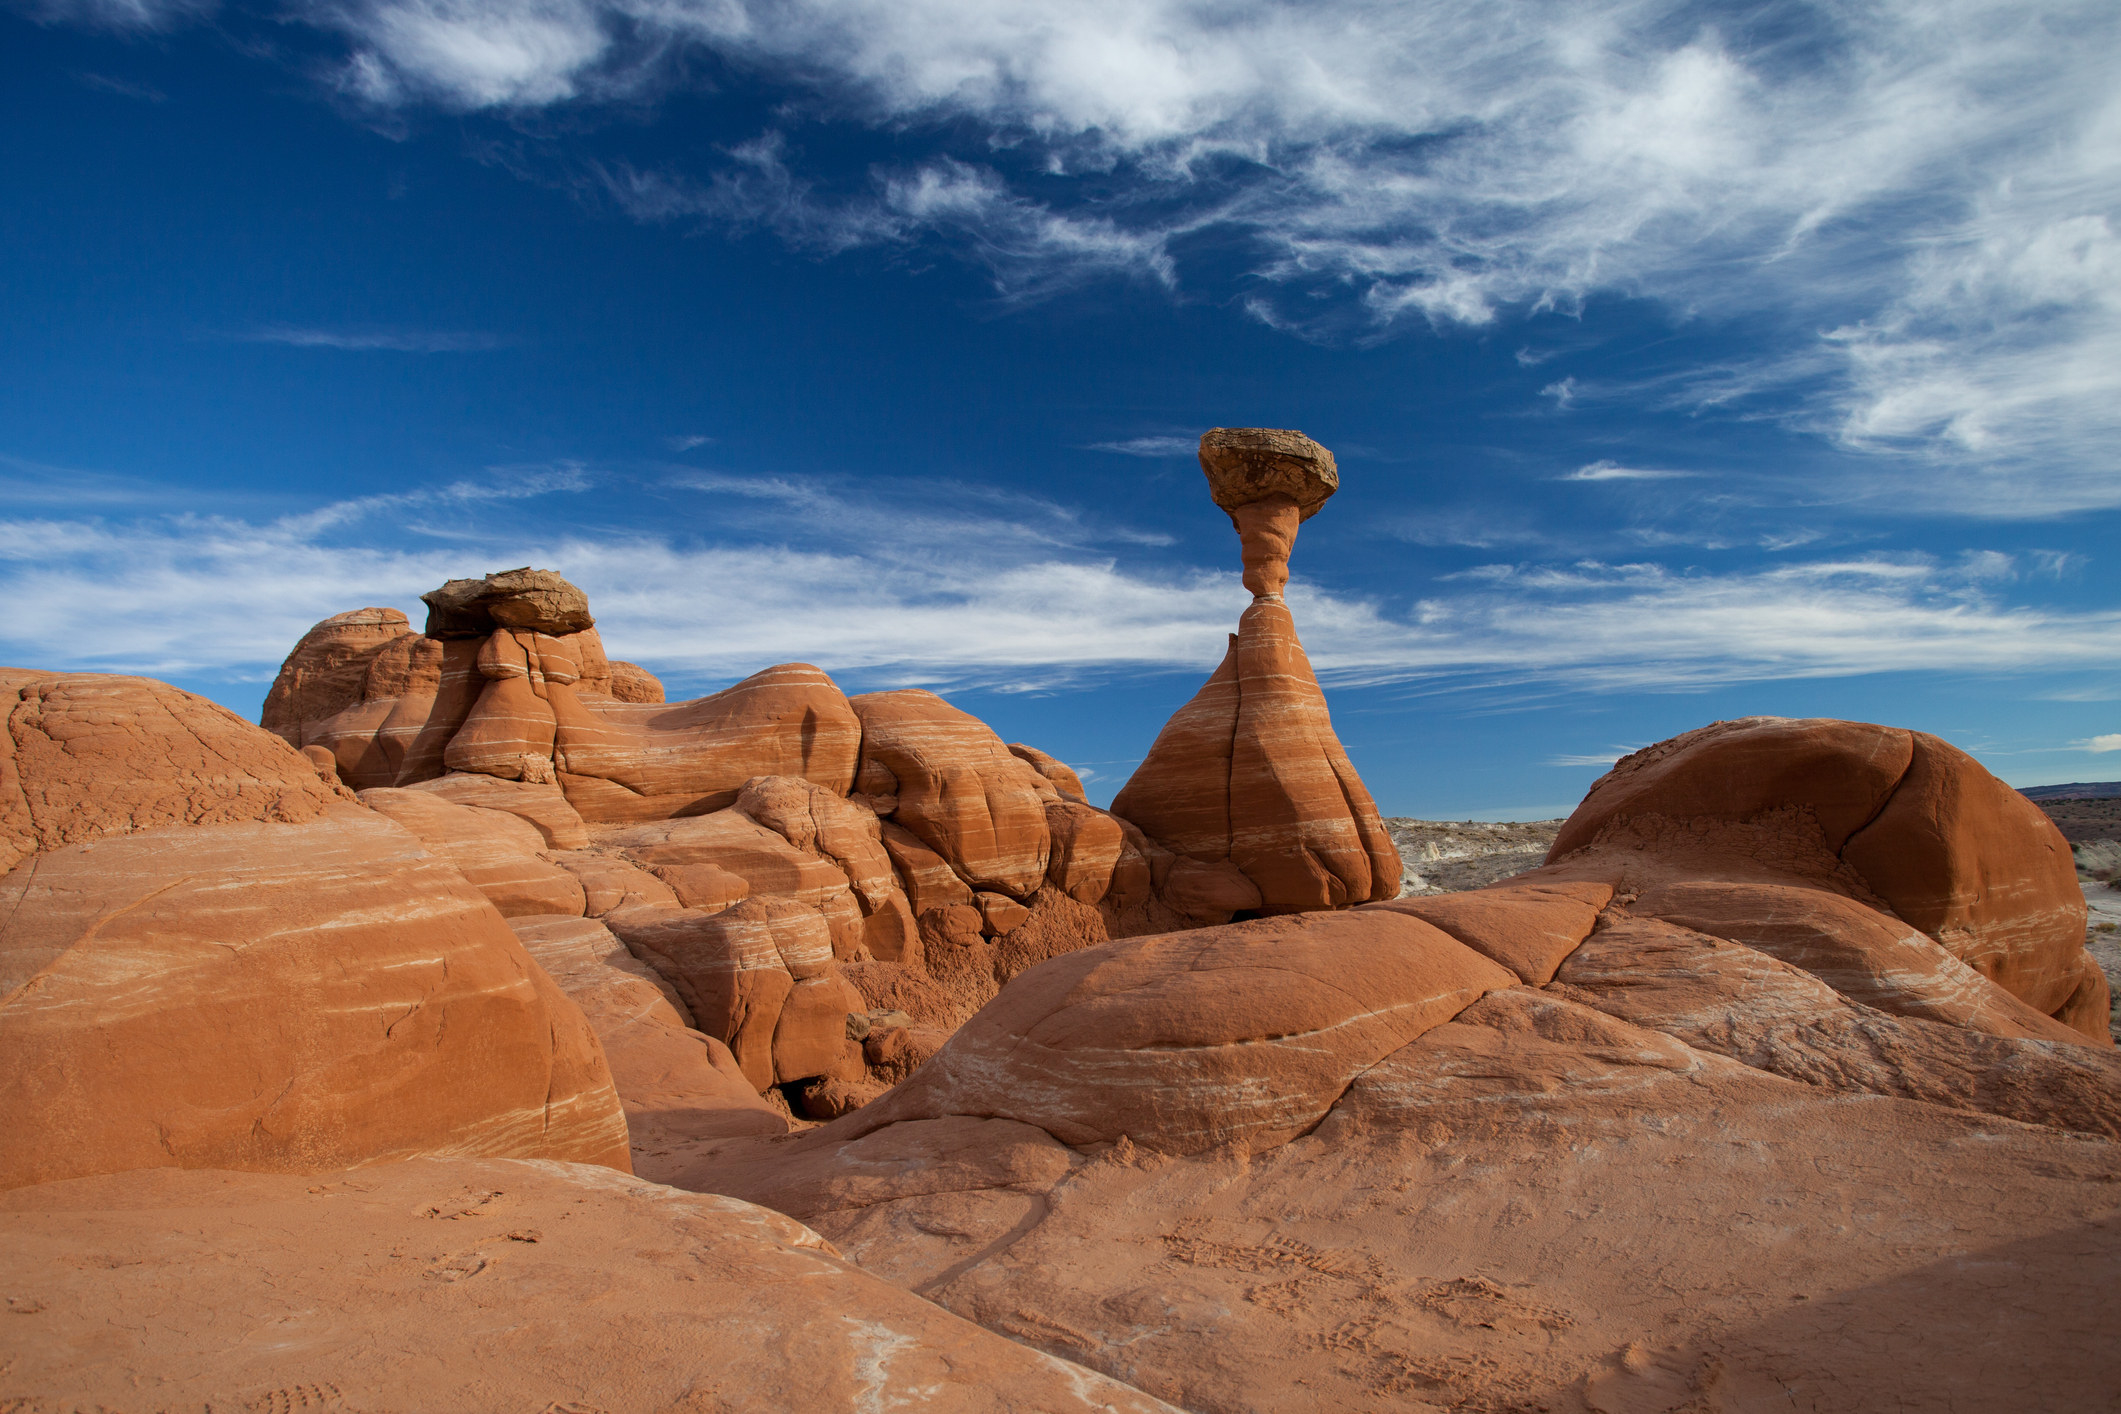 unique tall red rock formation with a rounded top, contrast against blue skies